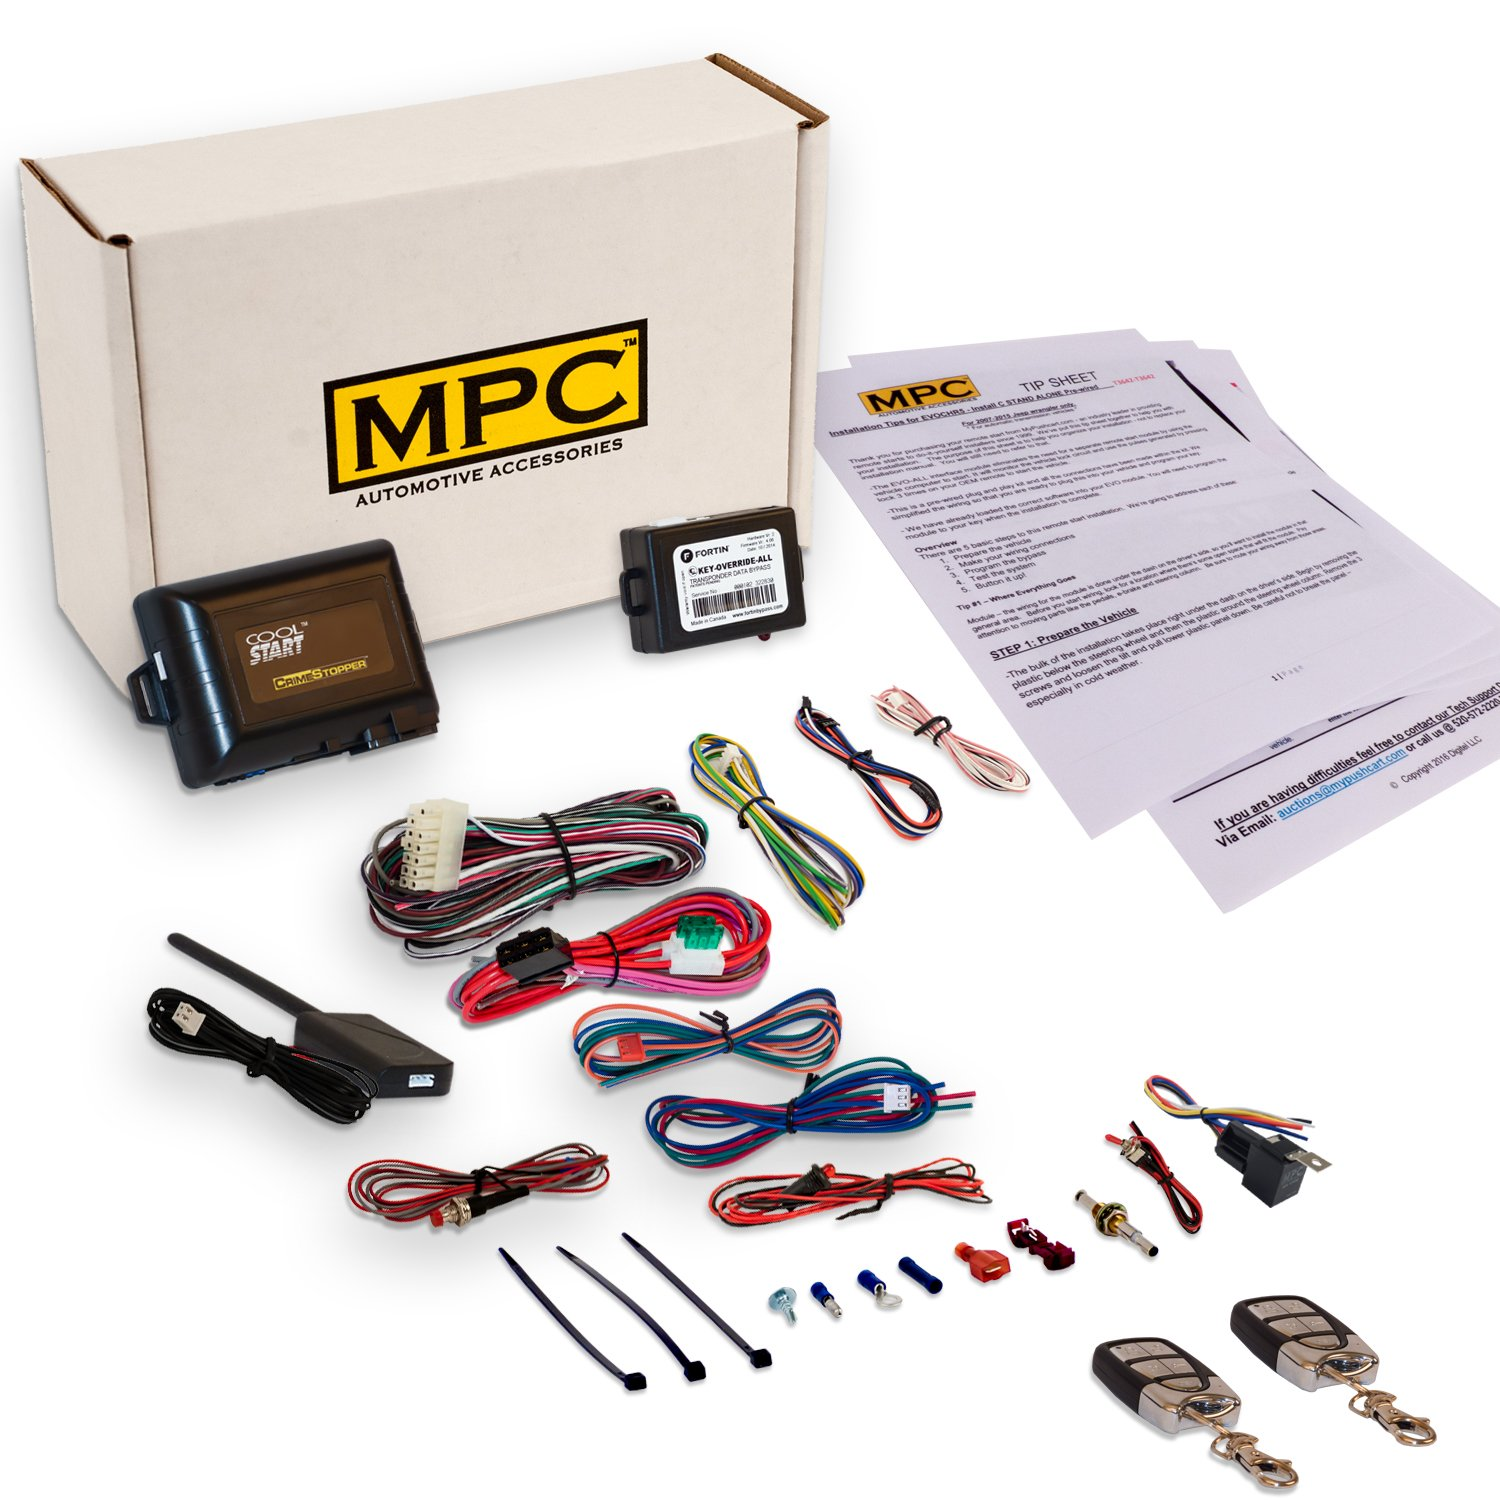 MPC Complete 5-Button Remote Start Kit with Keyless Entry for 2005-2012 Toyota Avalon - Includes Bypass - Firmware Preloaded